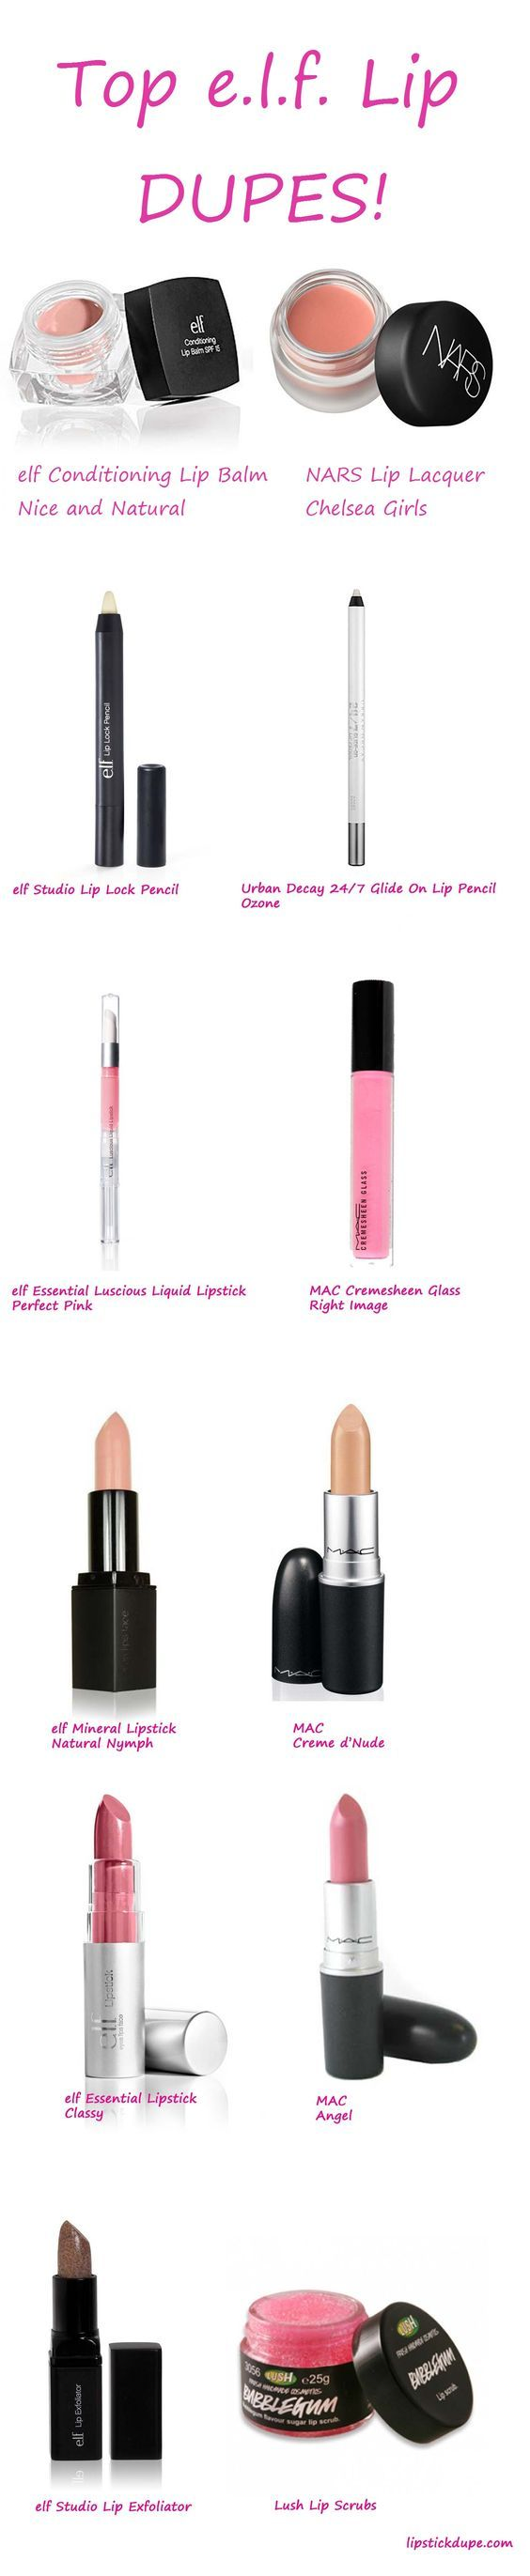 ooh lala elf dupes! We can't get enough of them, can you? #elf #eyeslipsface #lipstickdupe www.lipstickdupe.com